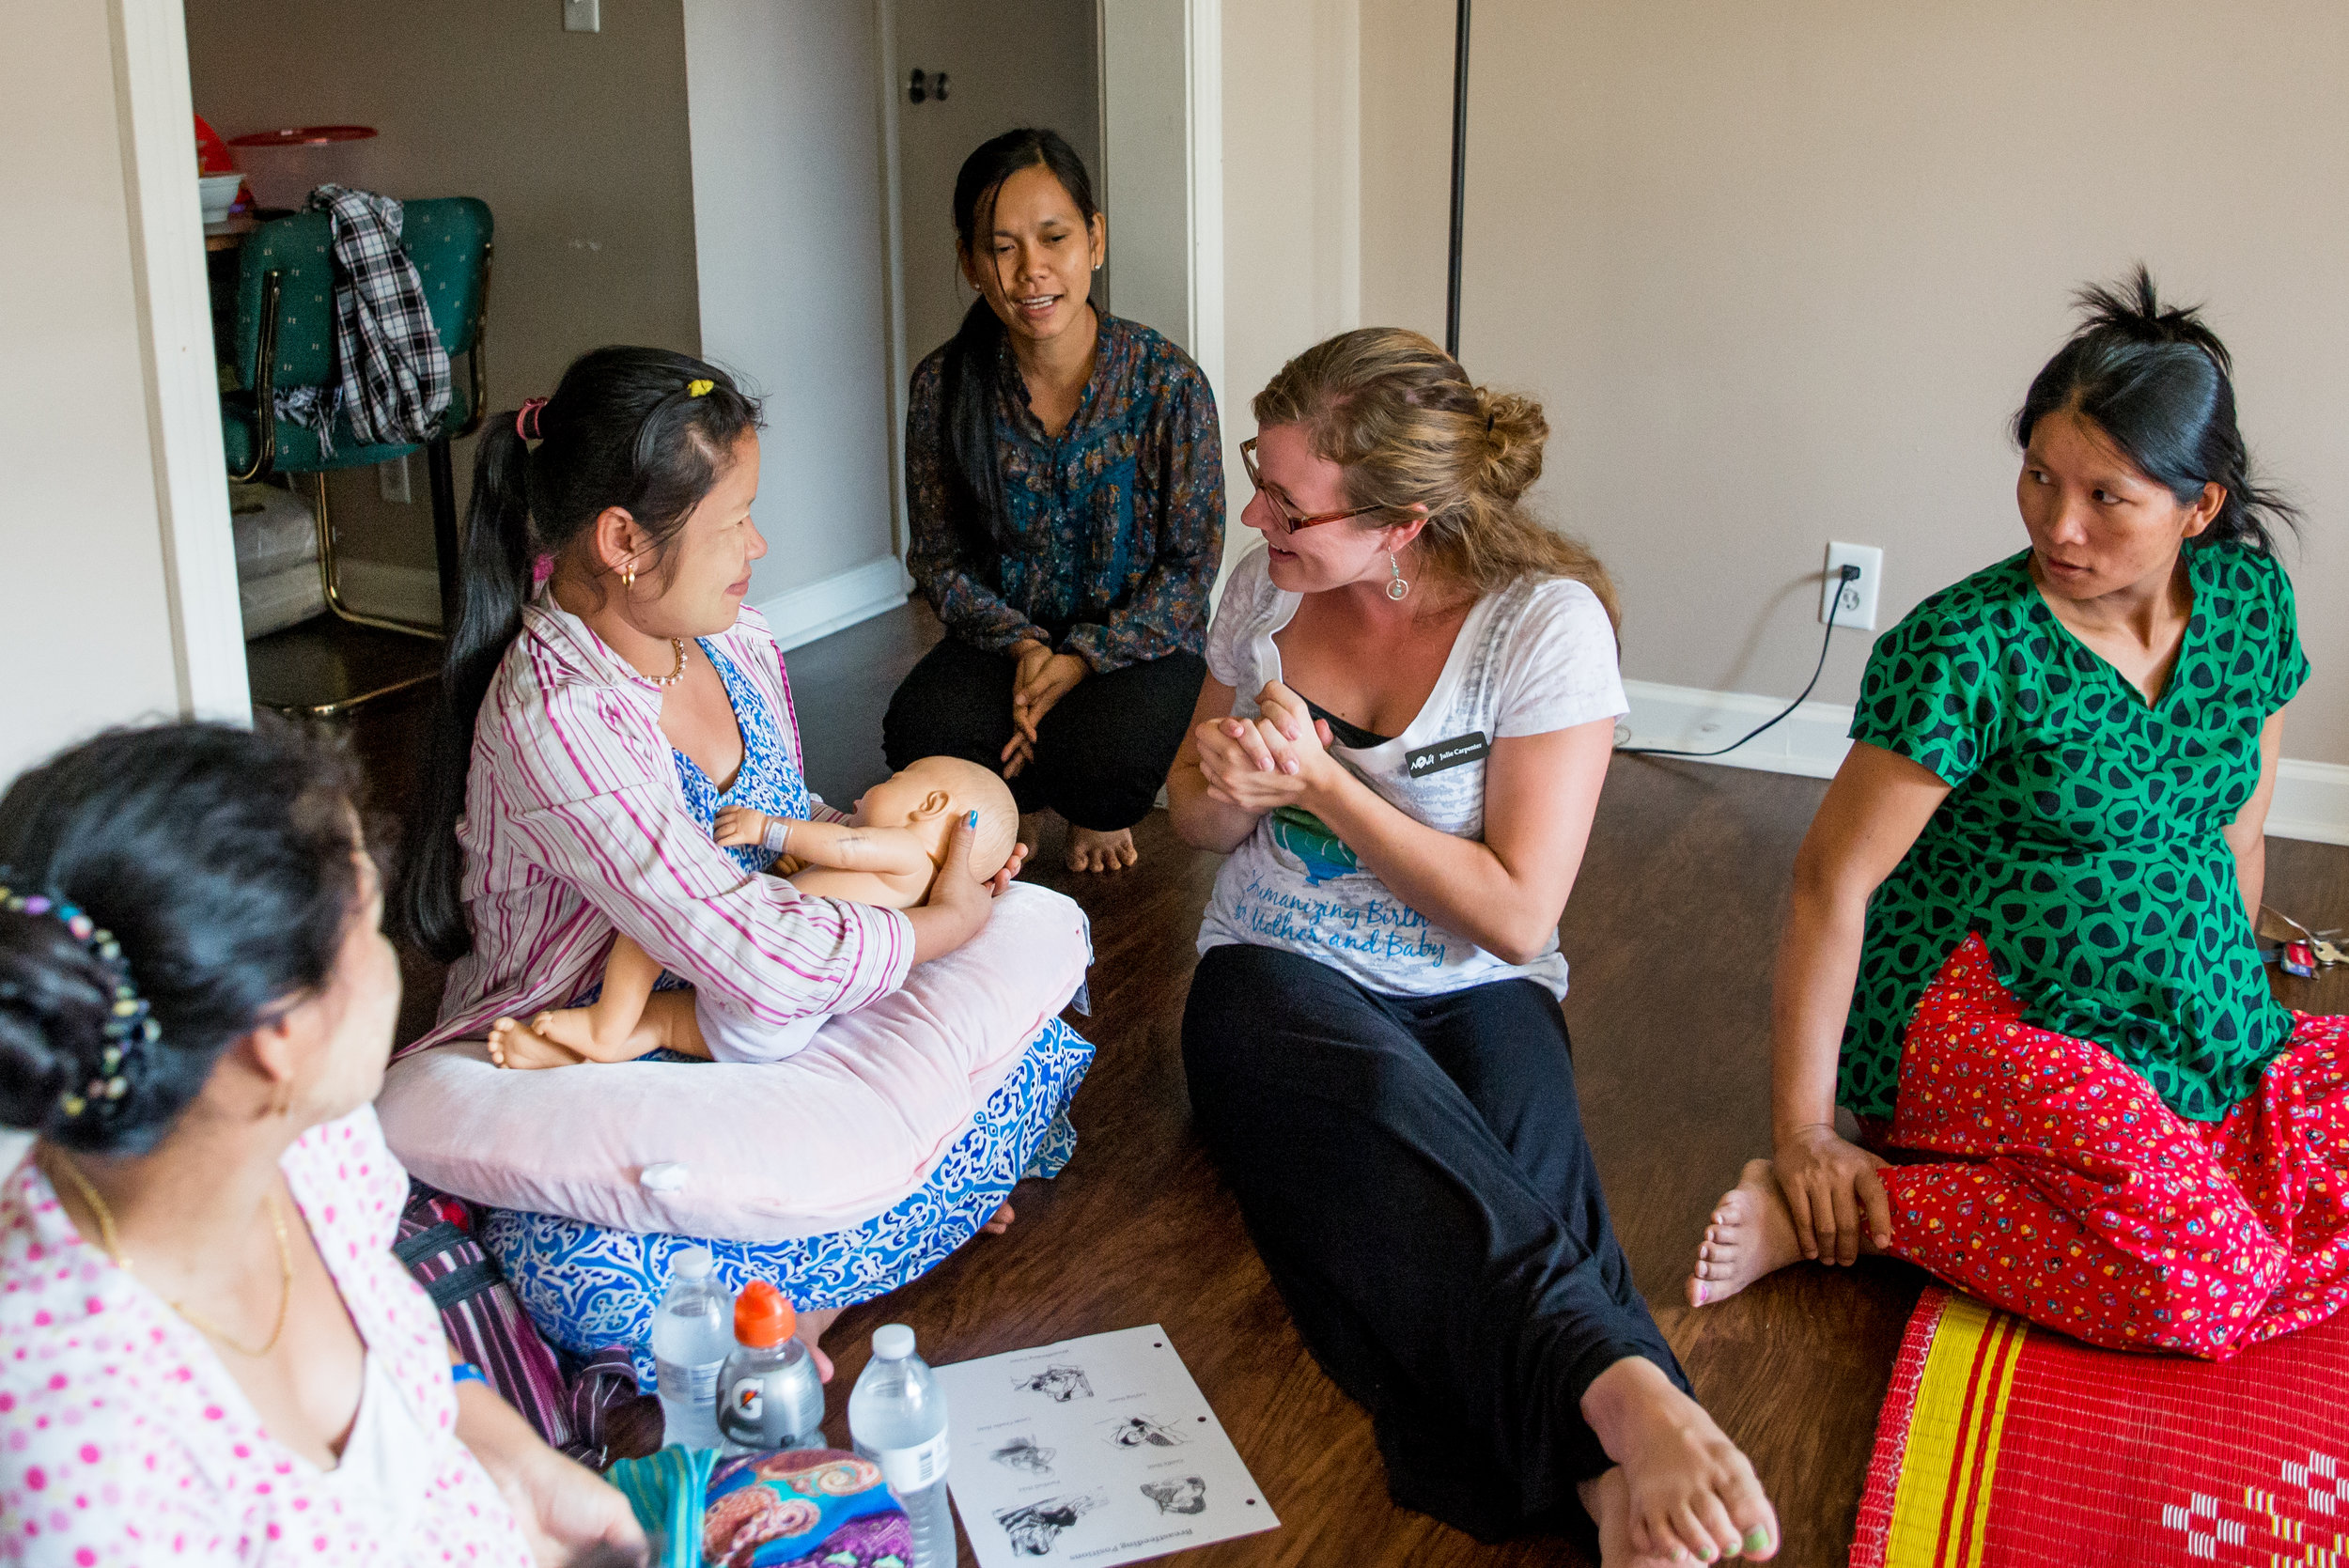 Through our partnership with NOVA Birth Services, we've been able to offer not only childbirth classes and doula support, but also breastfeeding counseling and education, all free of charge.